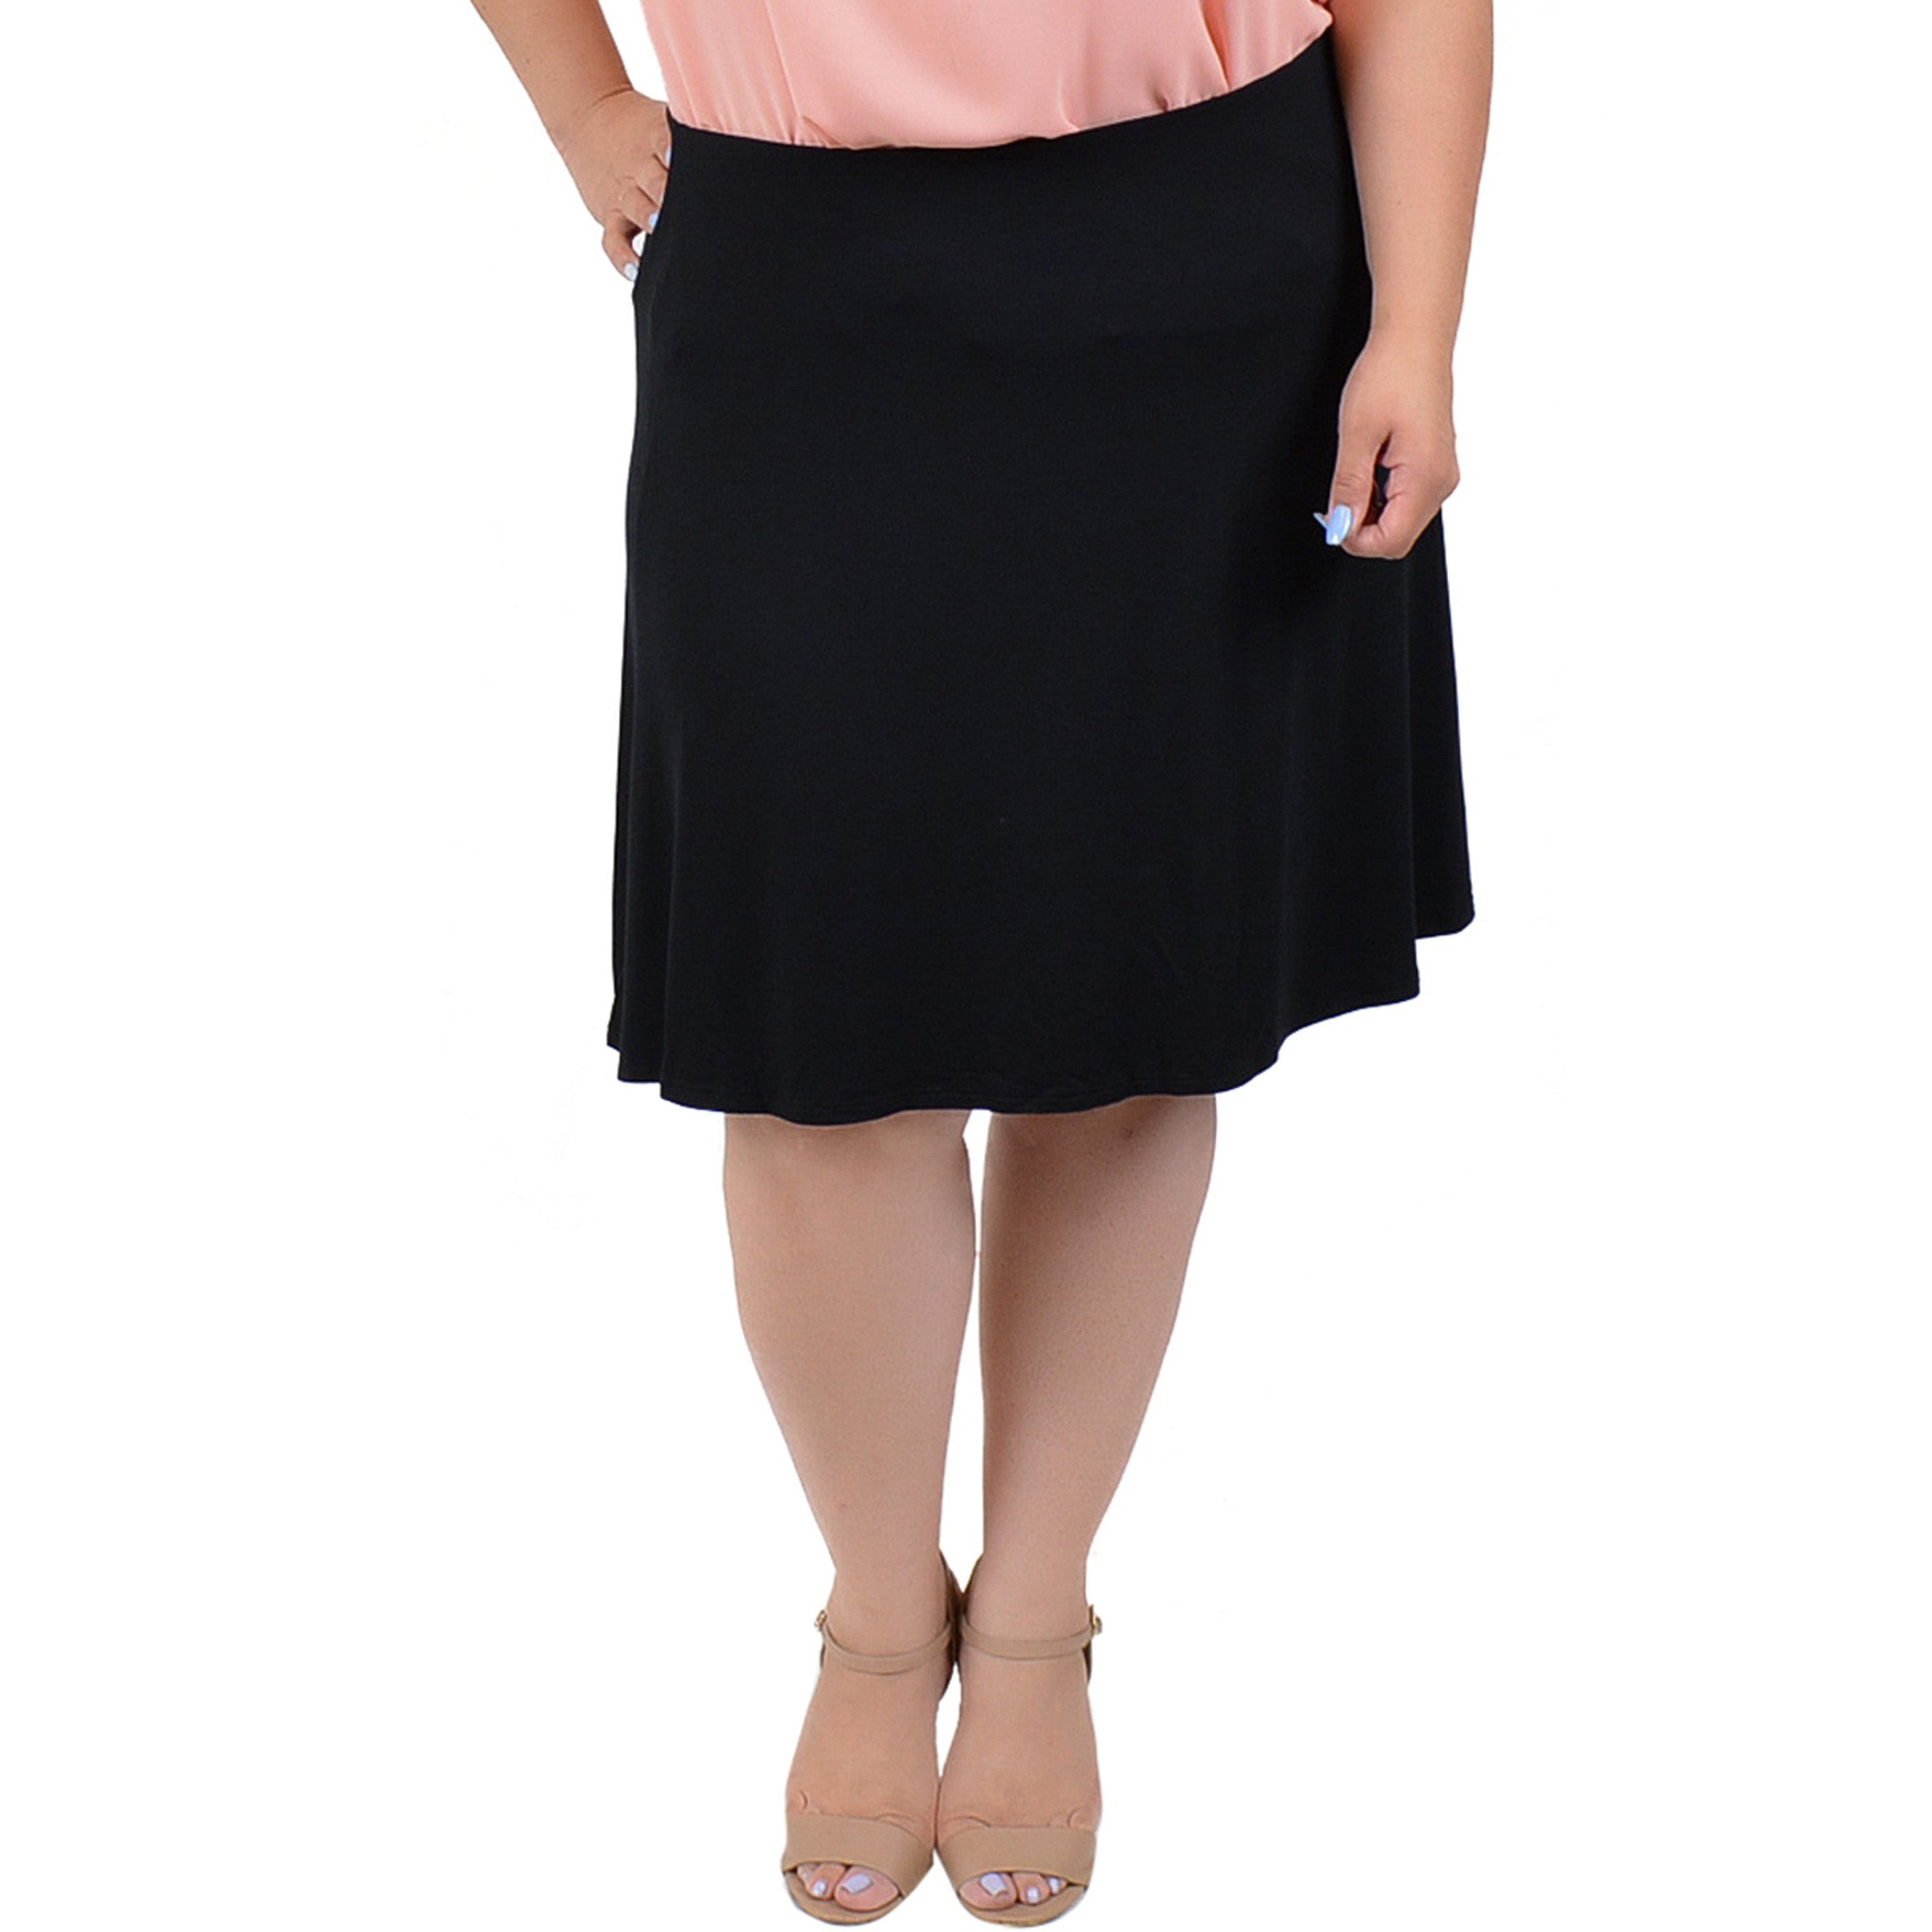 aad42ef1a43 Stretch Is Comfort Women s Plus Size A-Line Skirt